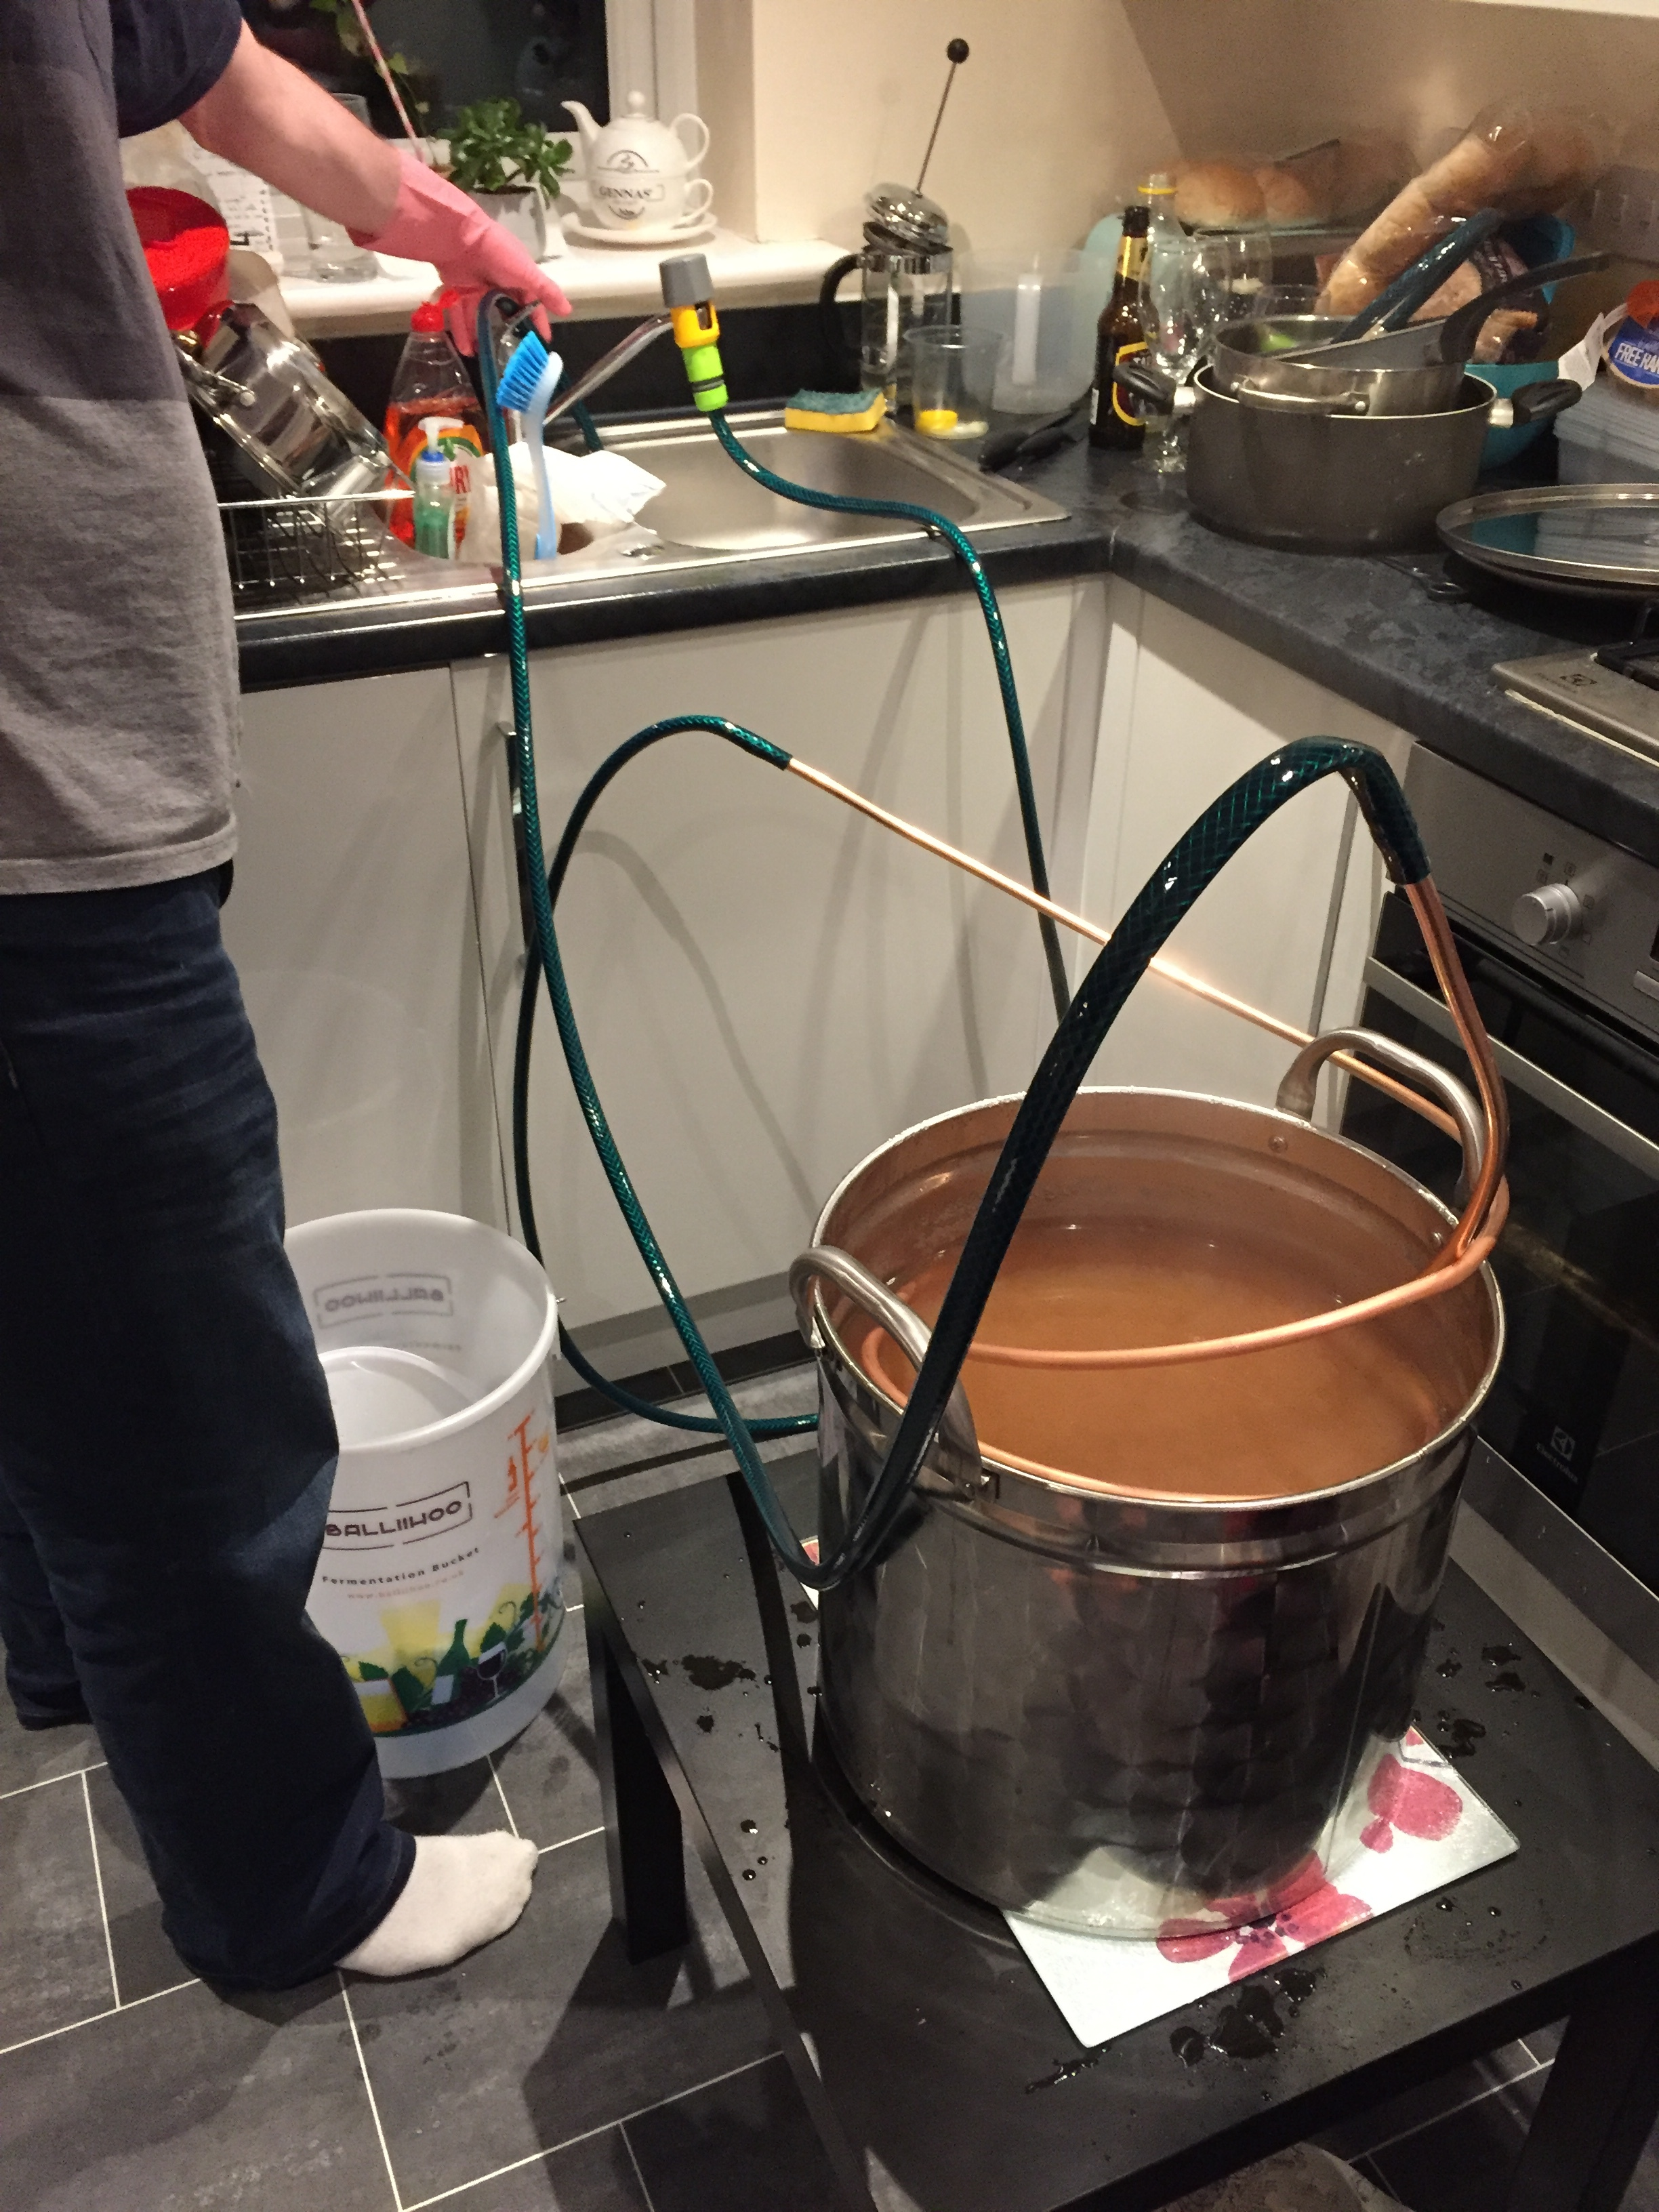 Chilling the wort after the boil. Photograph by Paul Forrester.